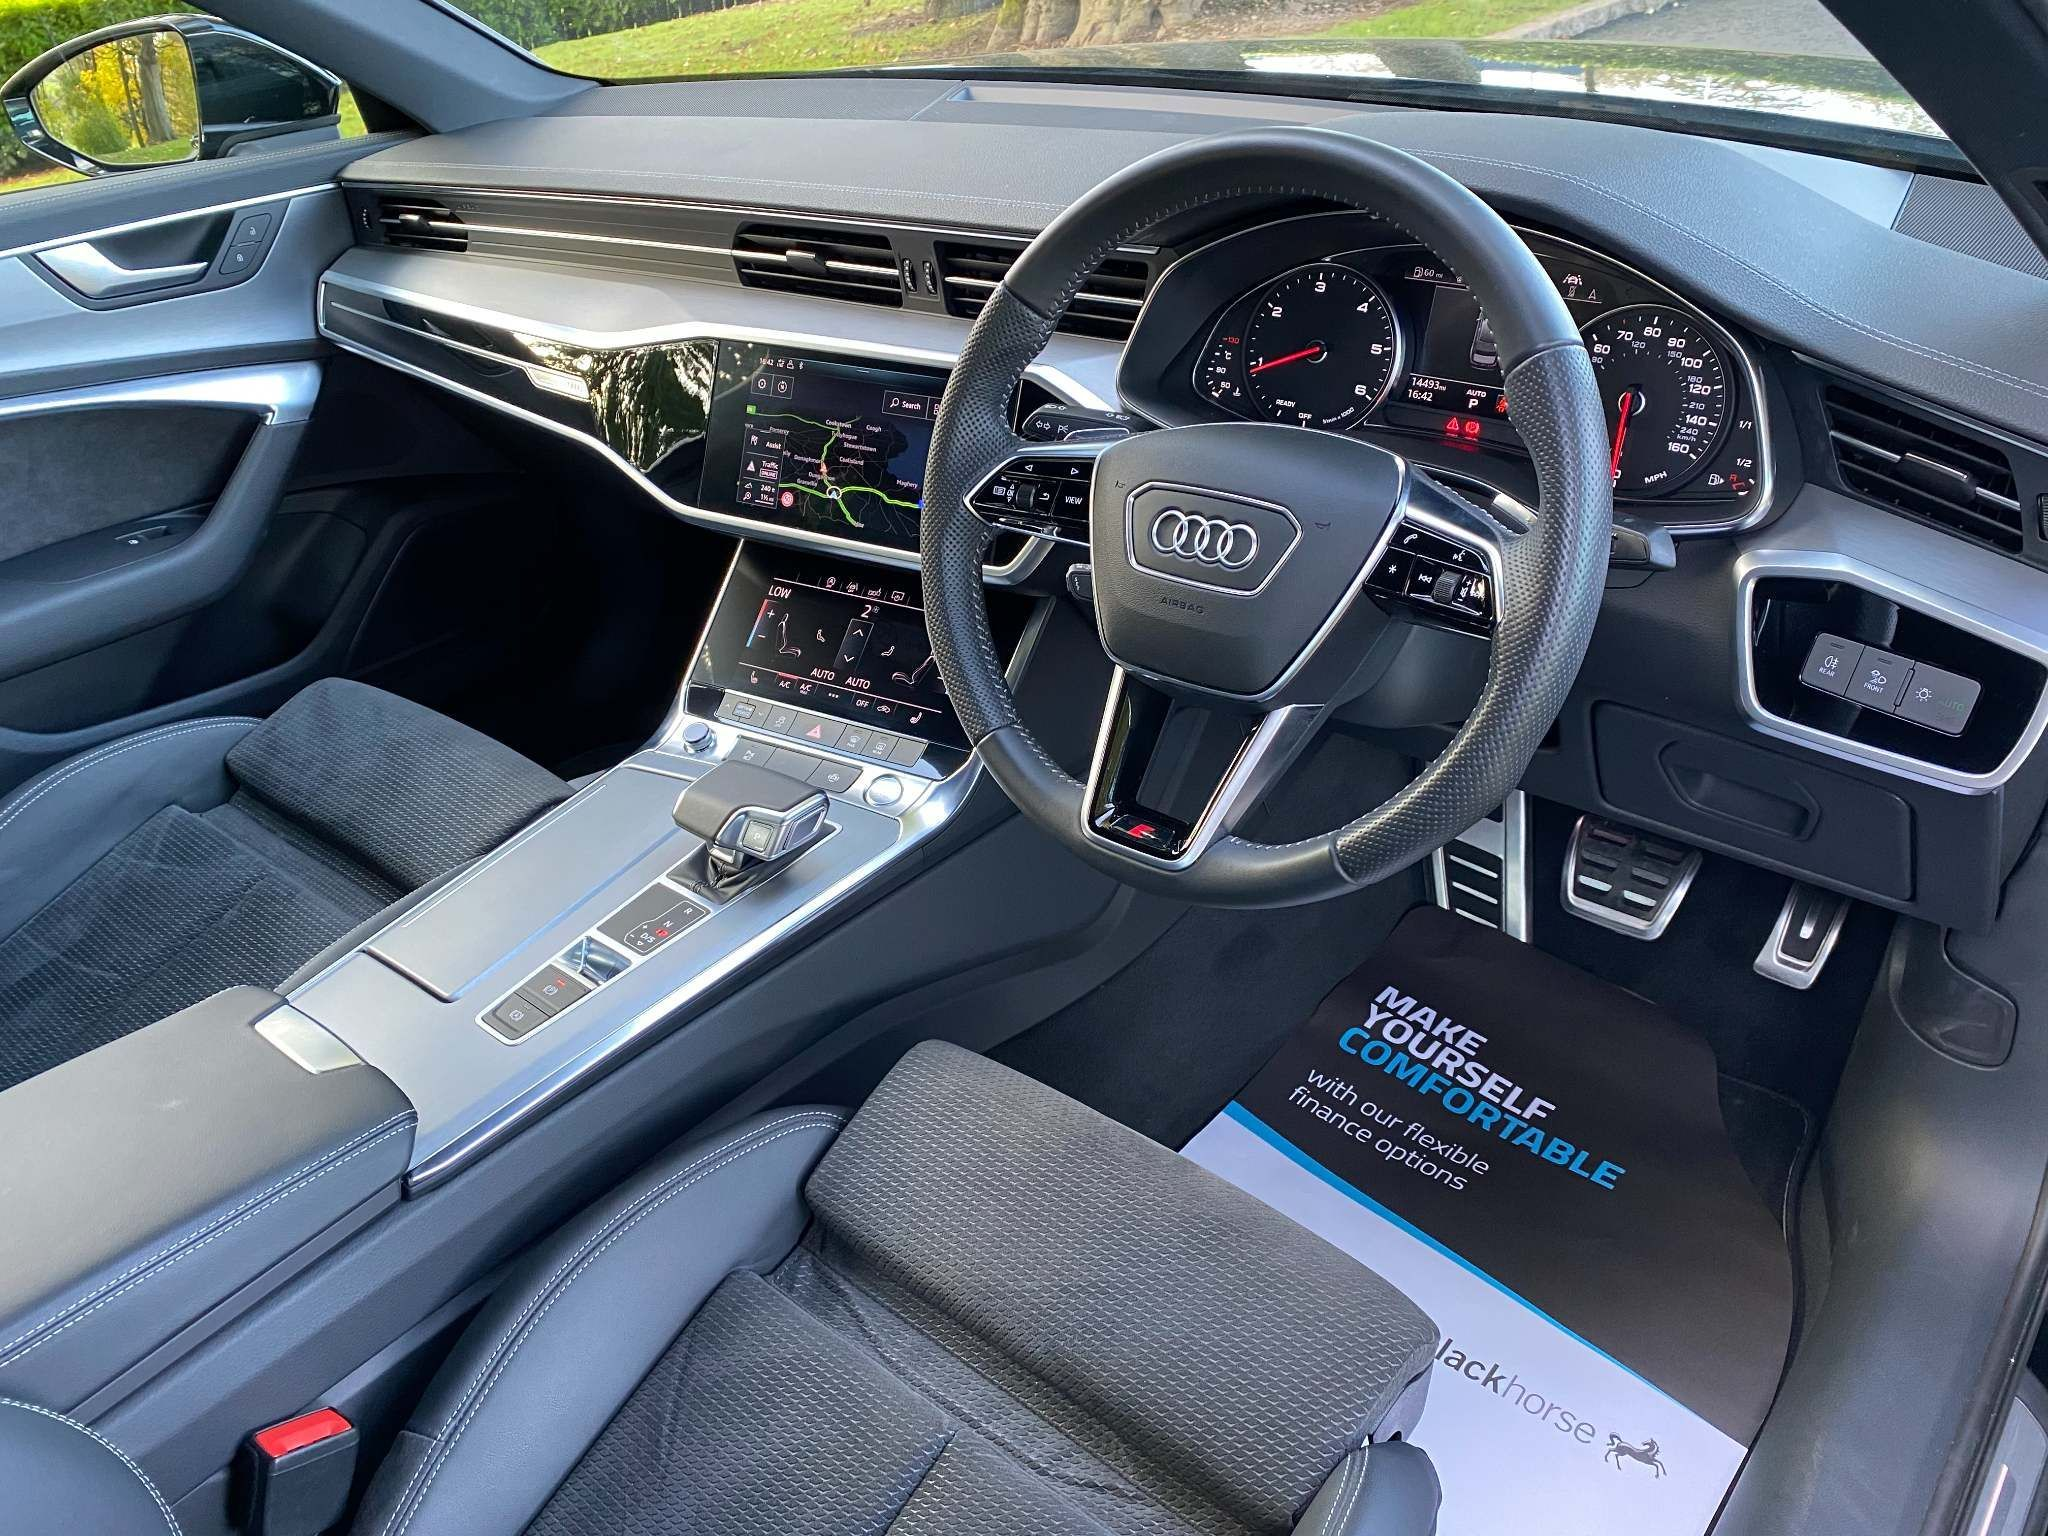 2018 Audi A6 2.0 TDI 40 S line S Tronic (s/s) 4dr Diesel Automatic – Moyway Motors Dungannon full